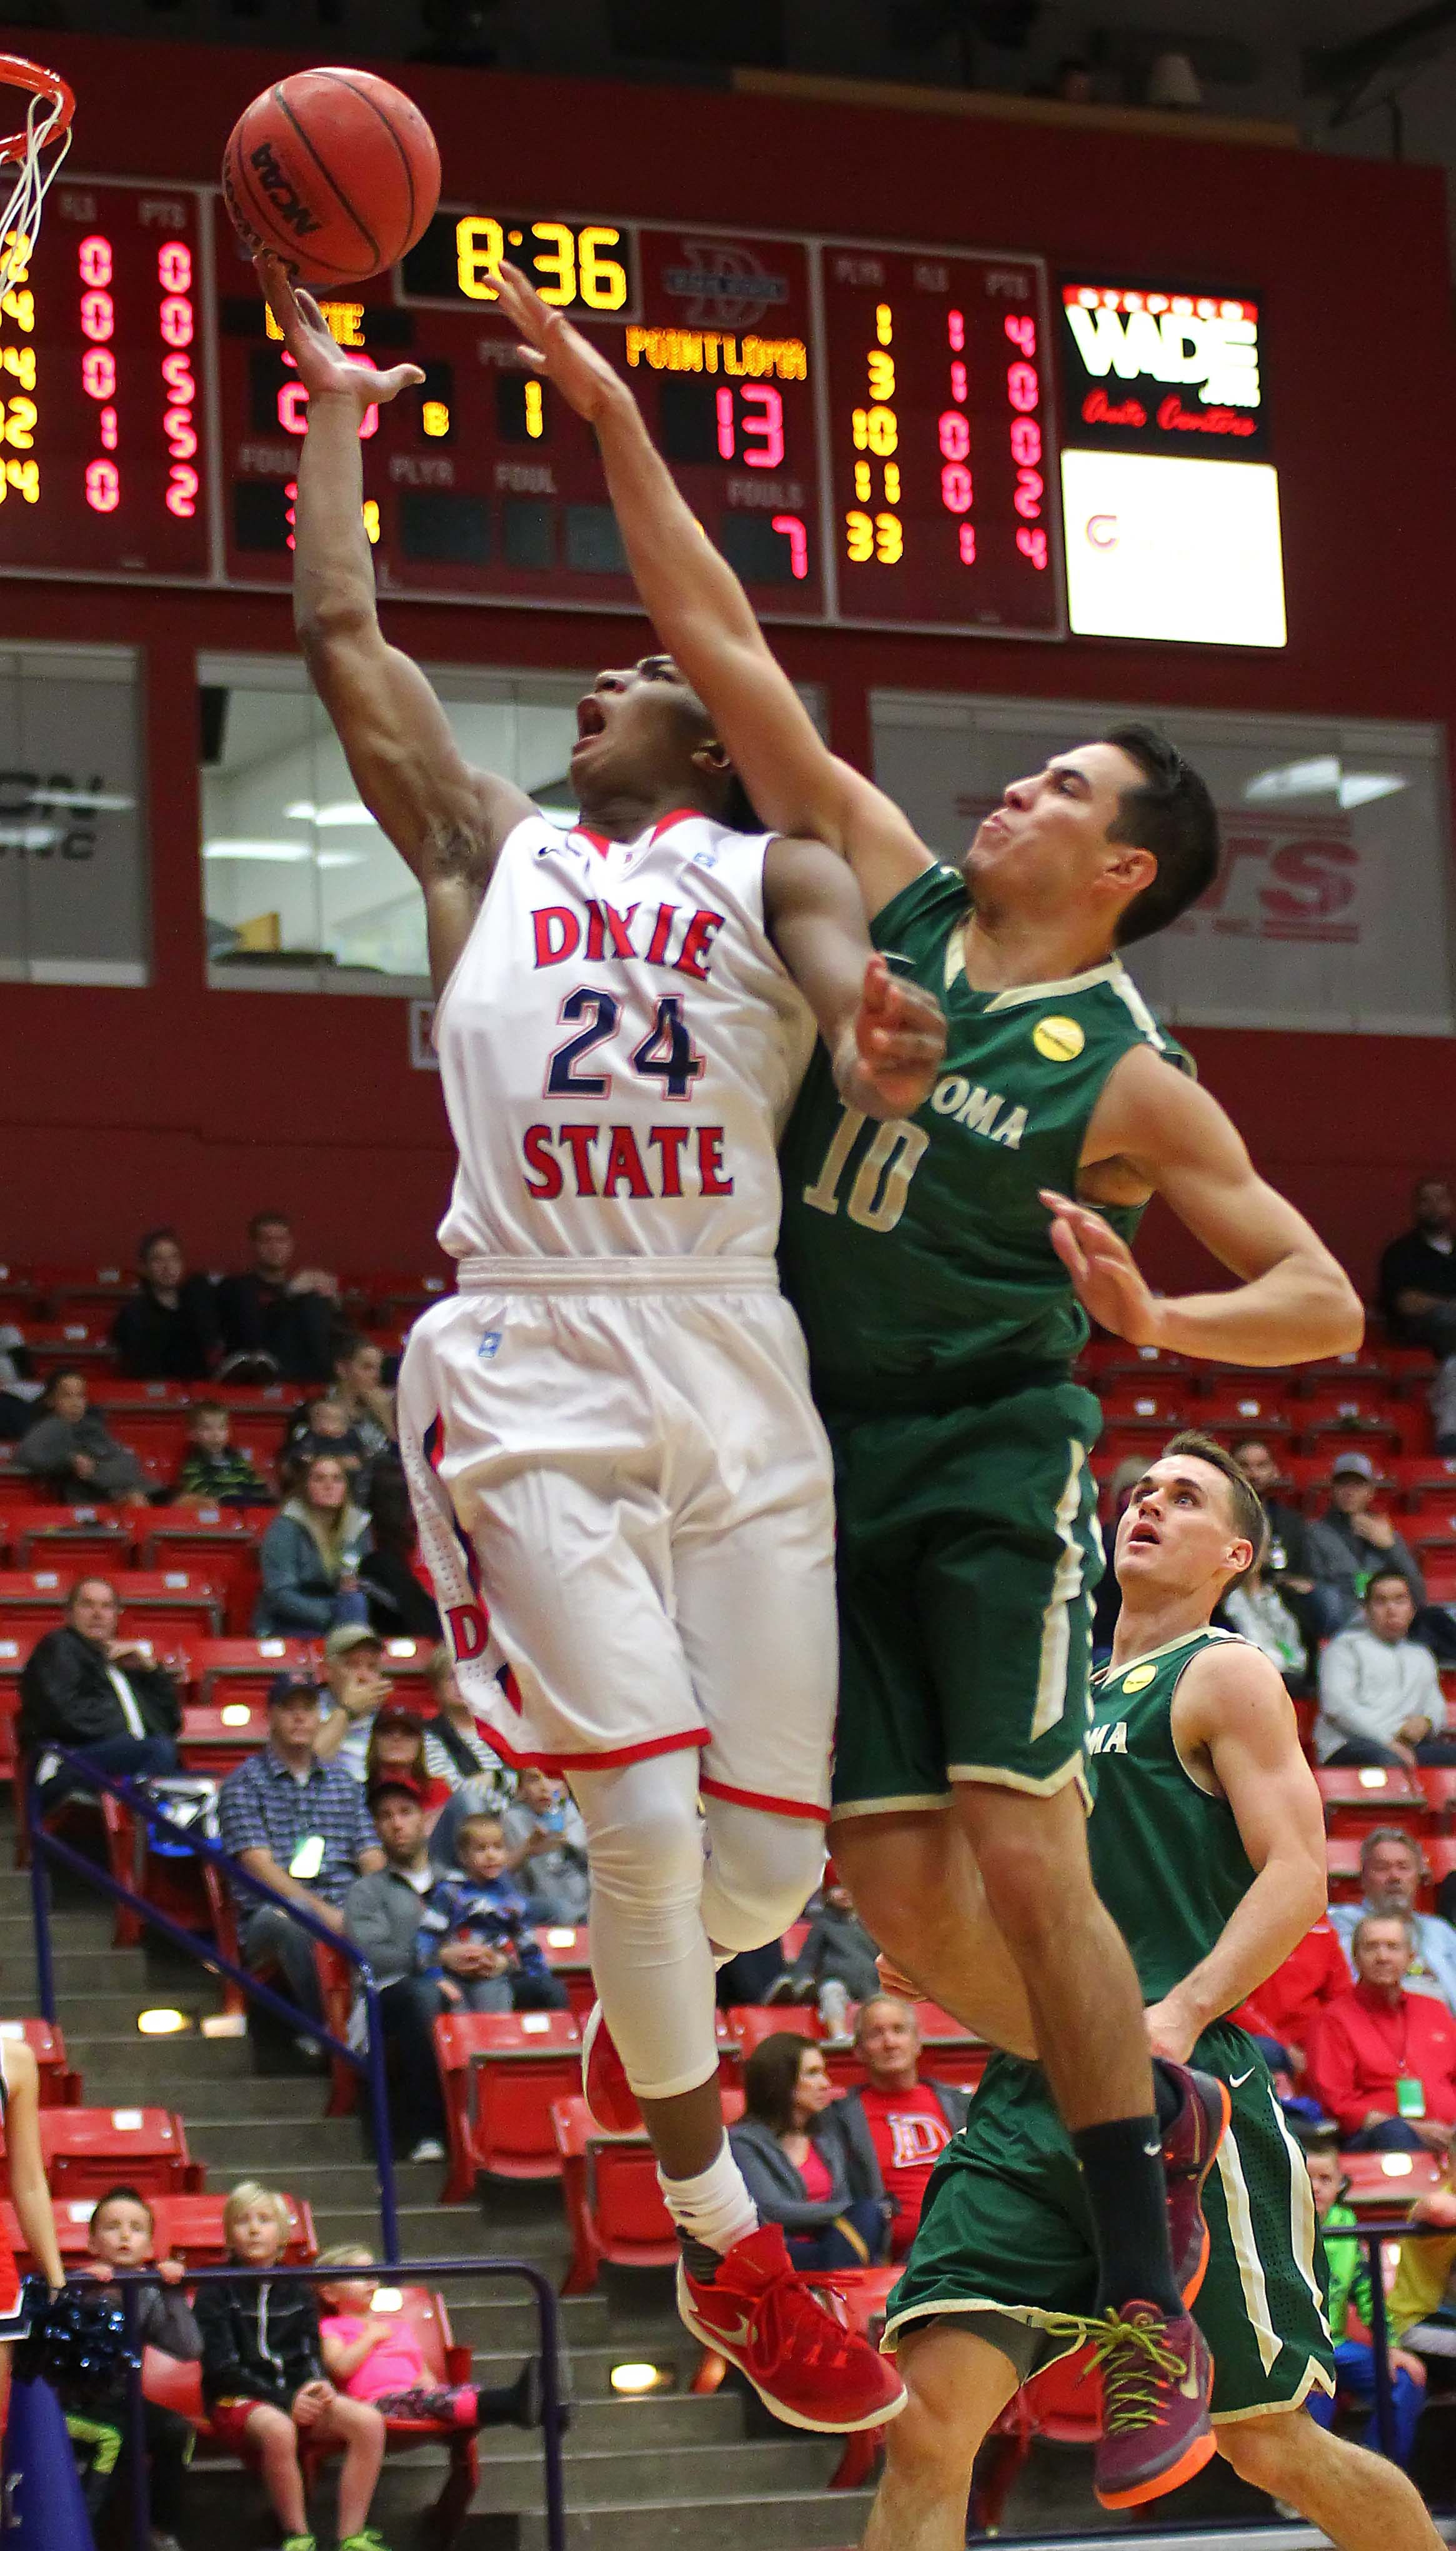 Dixie State's  Trevor Hill (24), Dixie State University vs. Point Loma University, Mens Basketball, St. George, Utah, Jan. 18, 2016, | Photo by Robert Hoppie, ASPpix.com, St. George News